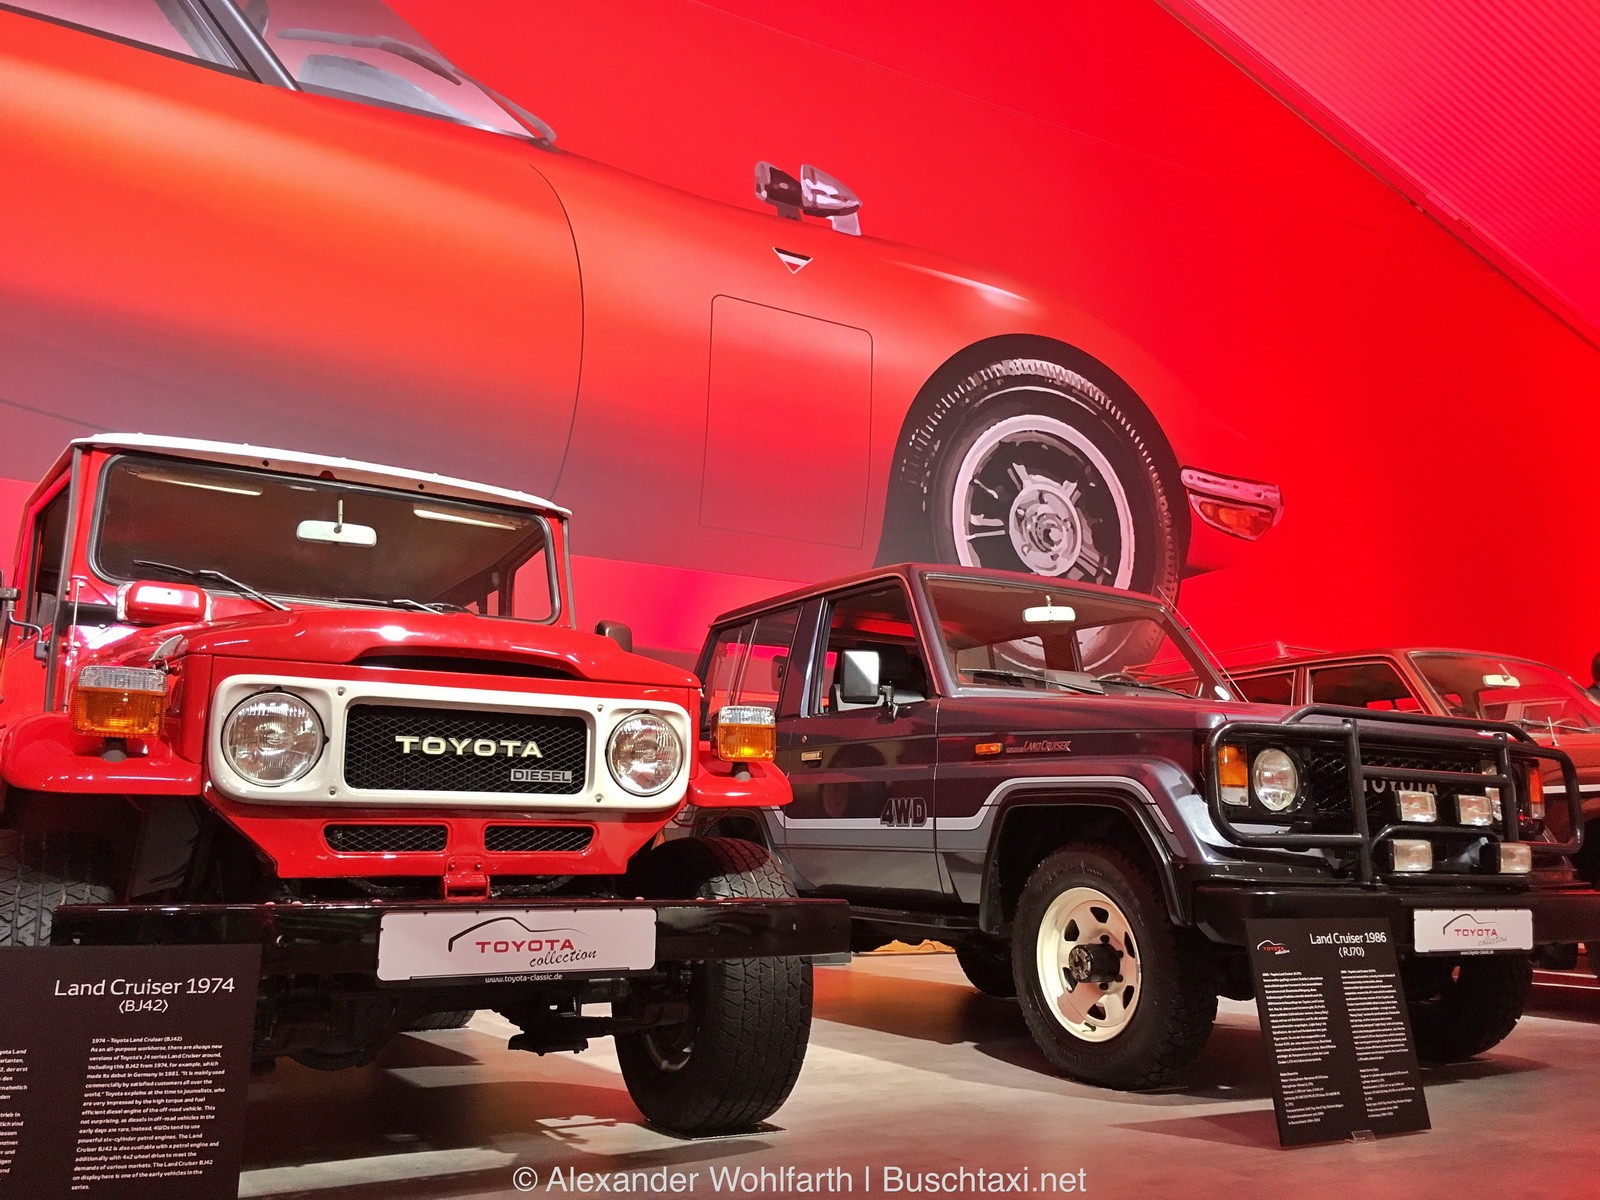 2017-11-23 toyota collection 04